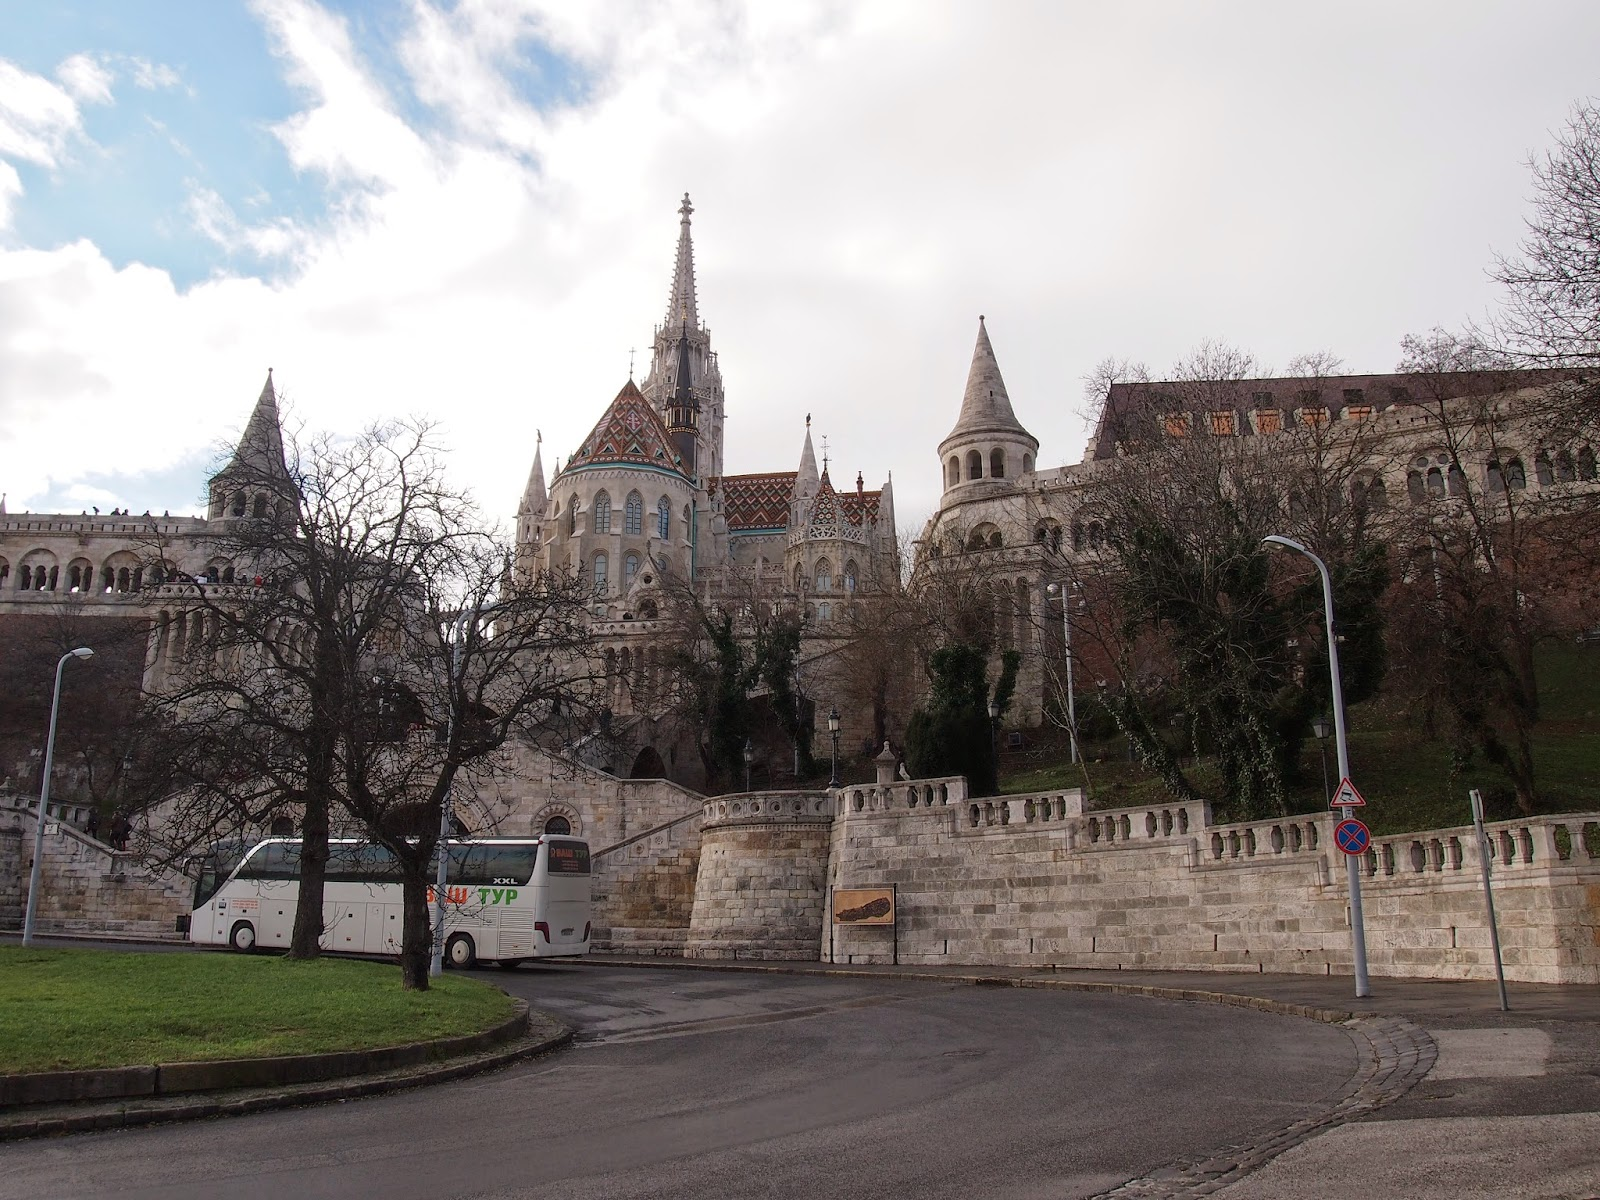 the backside of the Fisherman's Bastion